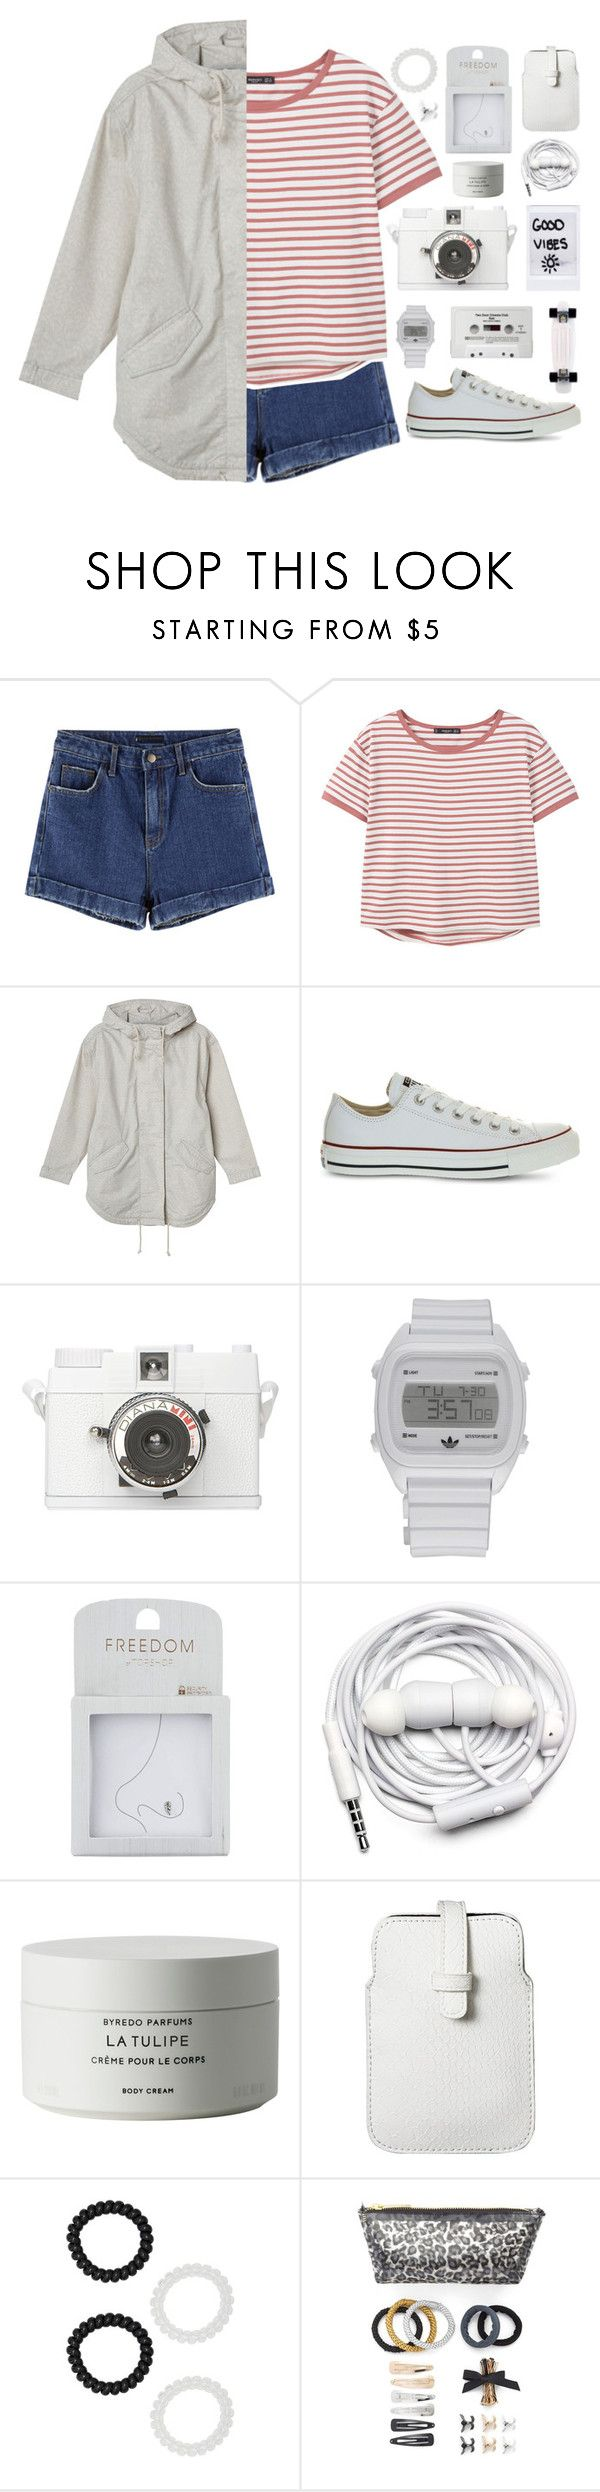 """just kids at heart // my dream wardrobe pt.33"" by undercover-martyn ❤ liked on Polyvore featuring MANGO, Monki, Converse, Lomography, adidas, Topshop, CASSETTE, Urbanears, Byredo and Mossimo"